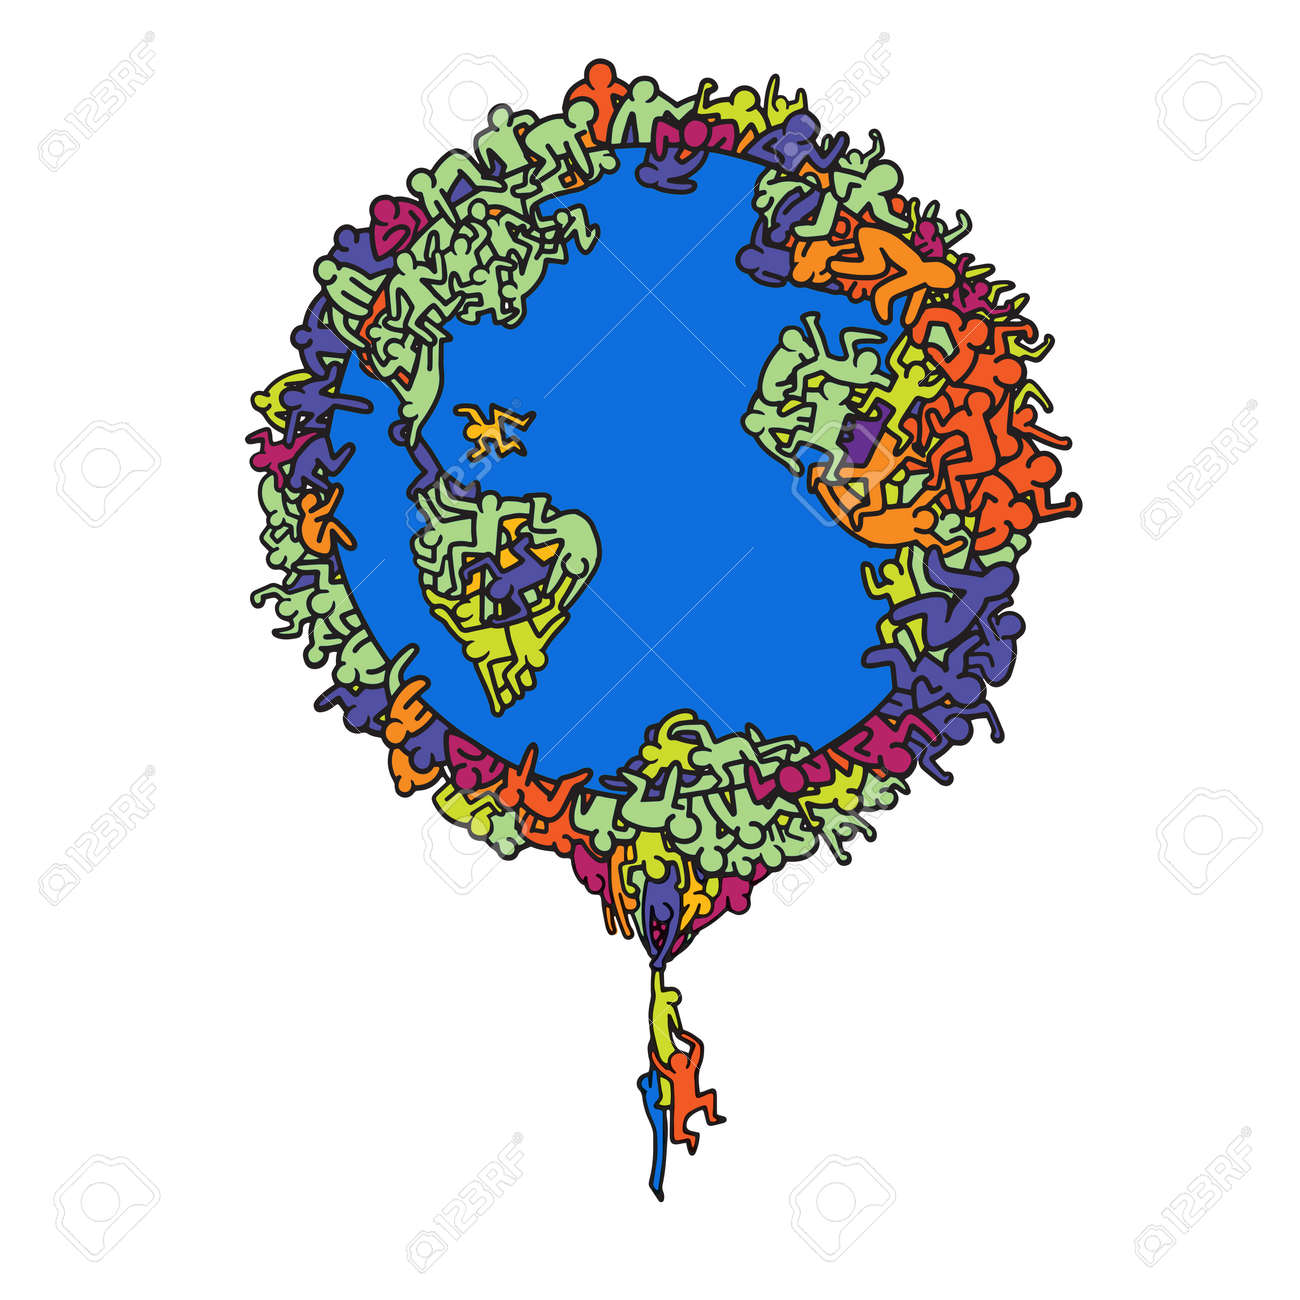 Hand Drawn Vector Illustration , Earth globe with people, illustrator line tools drawing,Flat Design - 87050511